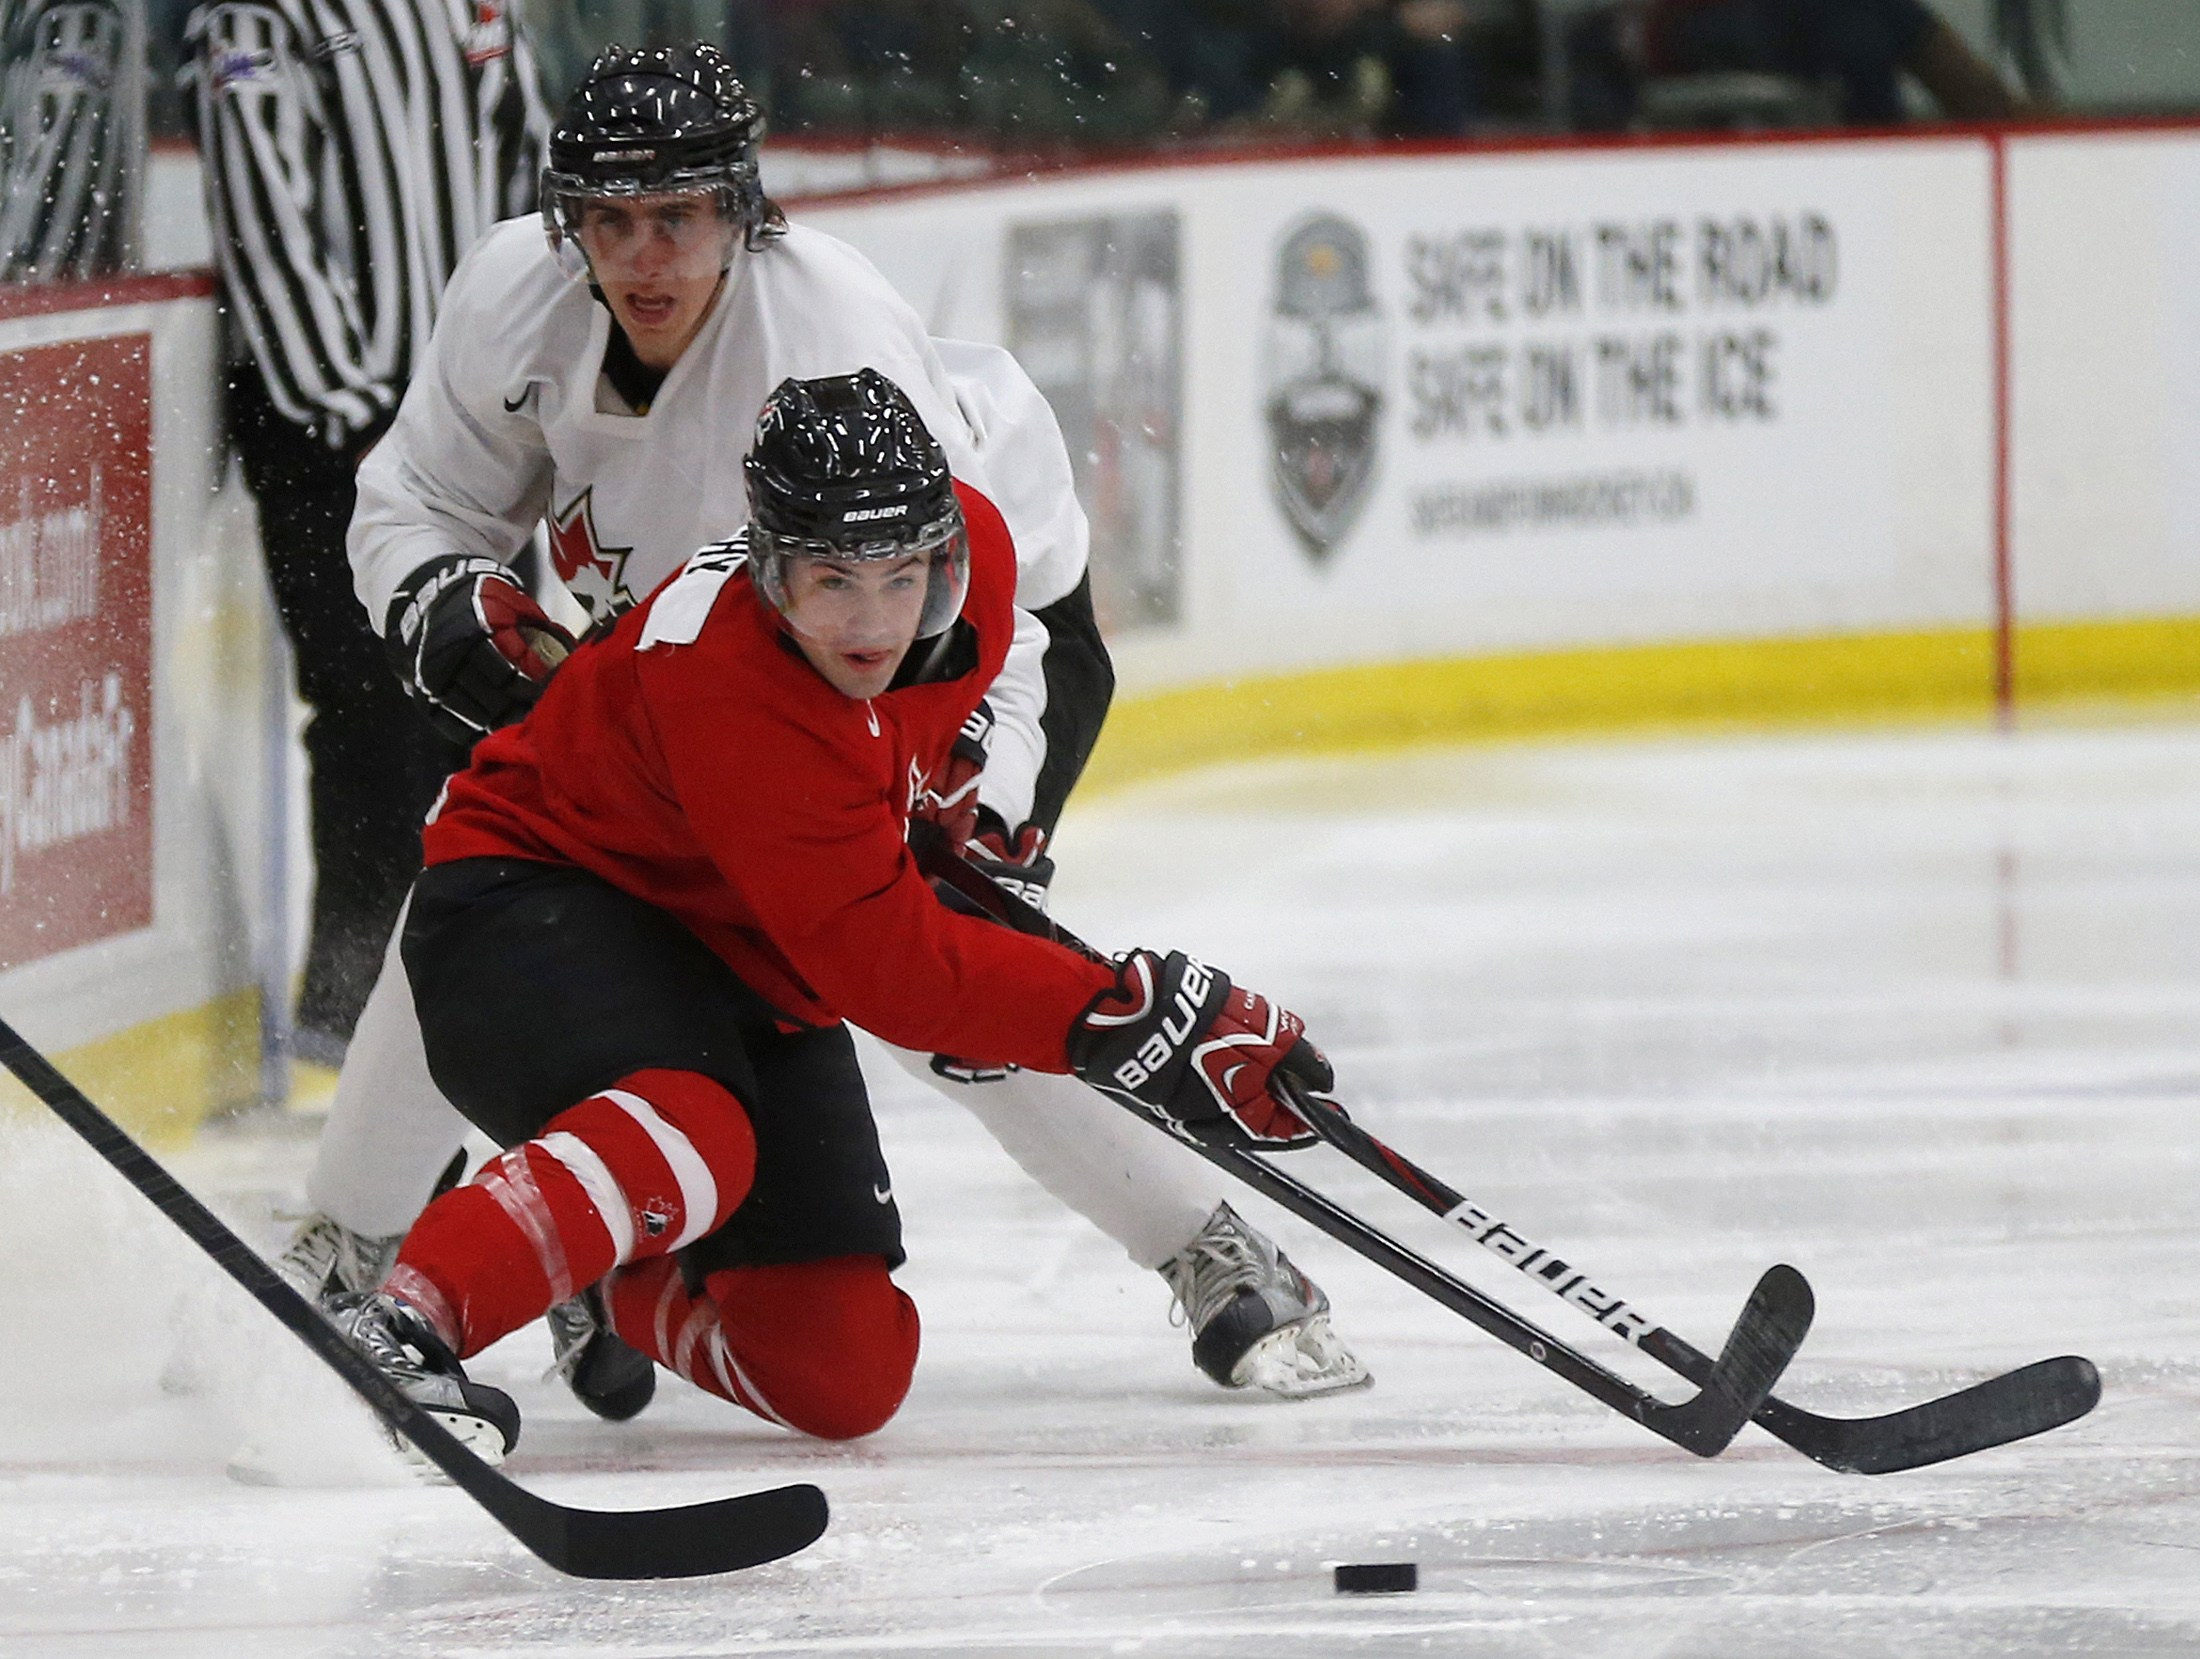 Team Canada's Ryan Murphy (R) is hauled down by CIS' Eric Galbraith during selection camp.